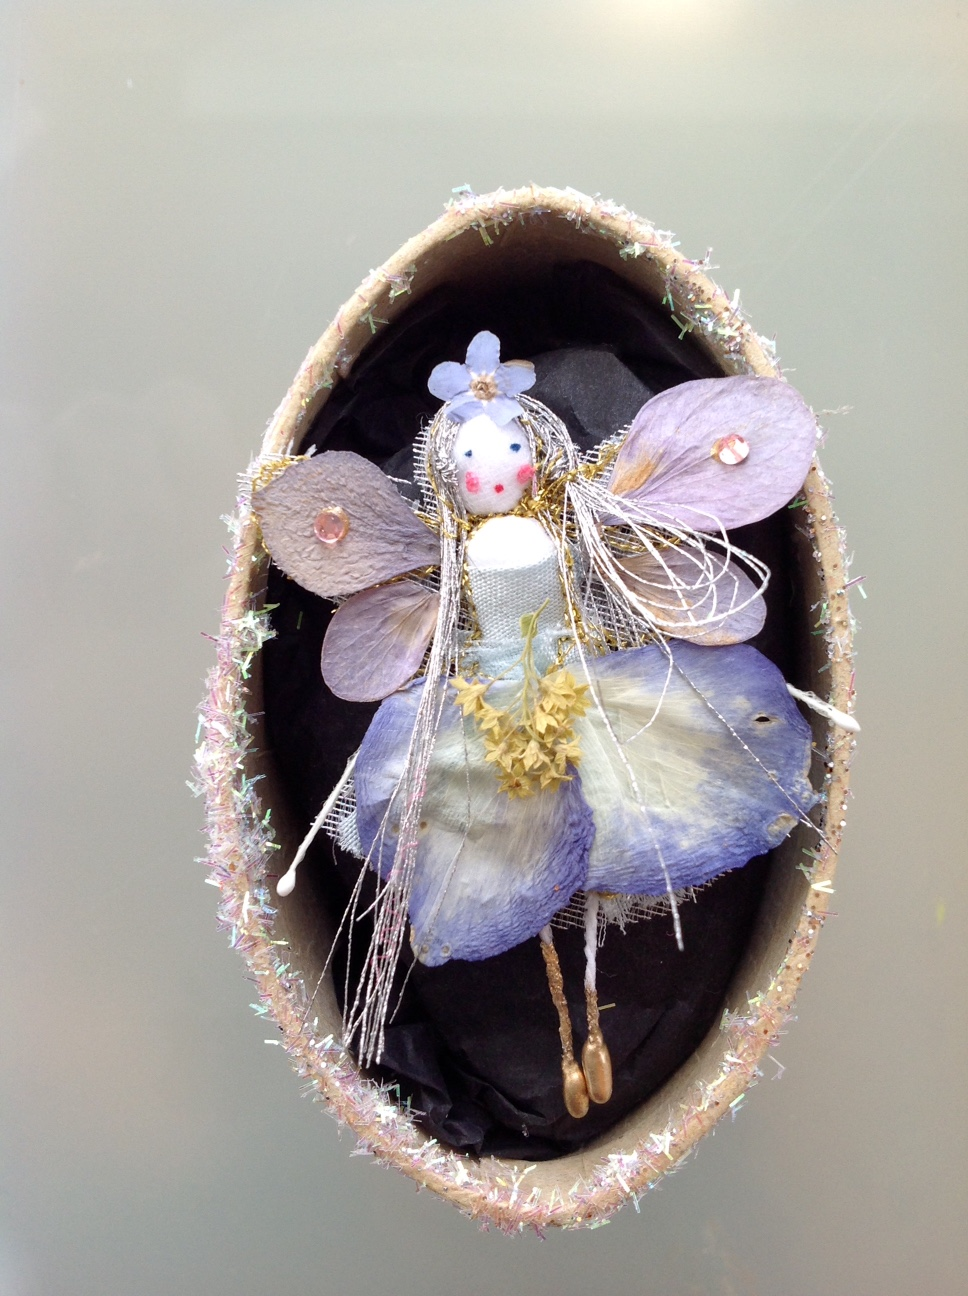 FORGET ME NOT A 6 cm fairy in a box with her name in the lid. Dressed in pansy, hydrangea and forget me not petals. £12 plus £ 3.50 p&p.